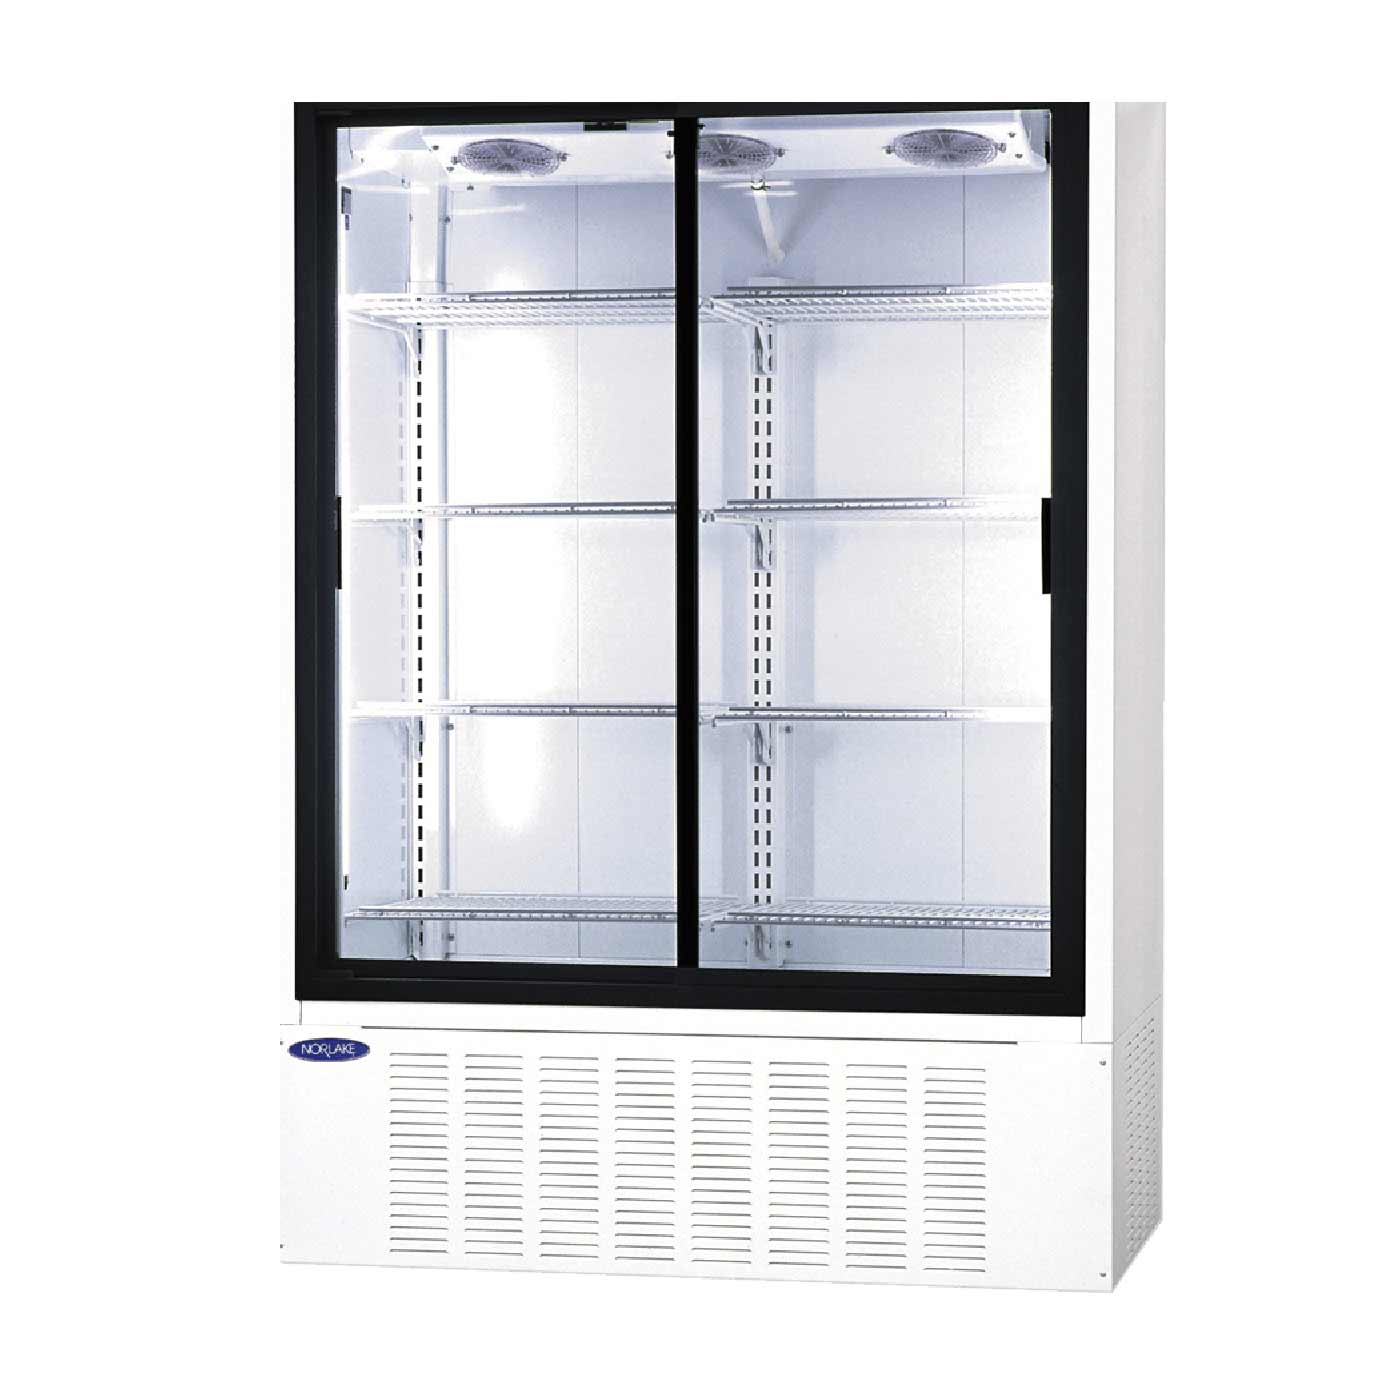 NorLake Bar Beverage Coolers with Double Glass Door